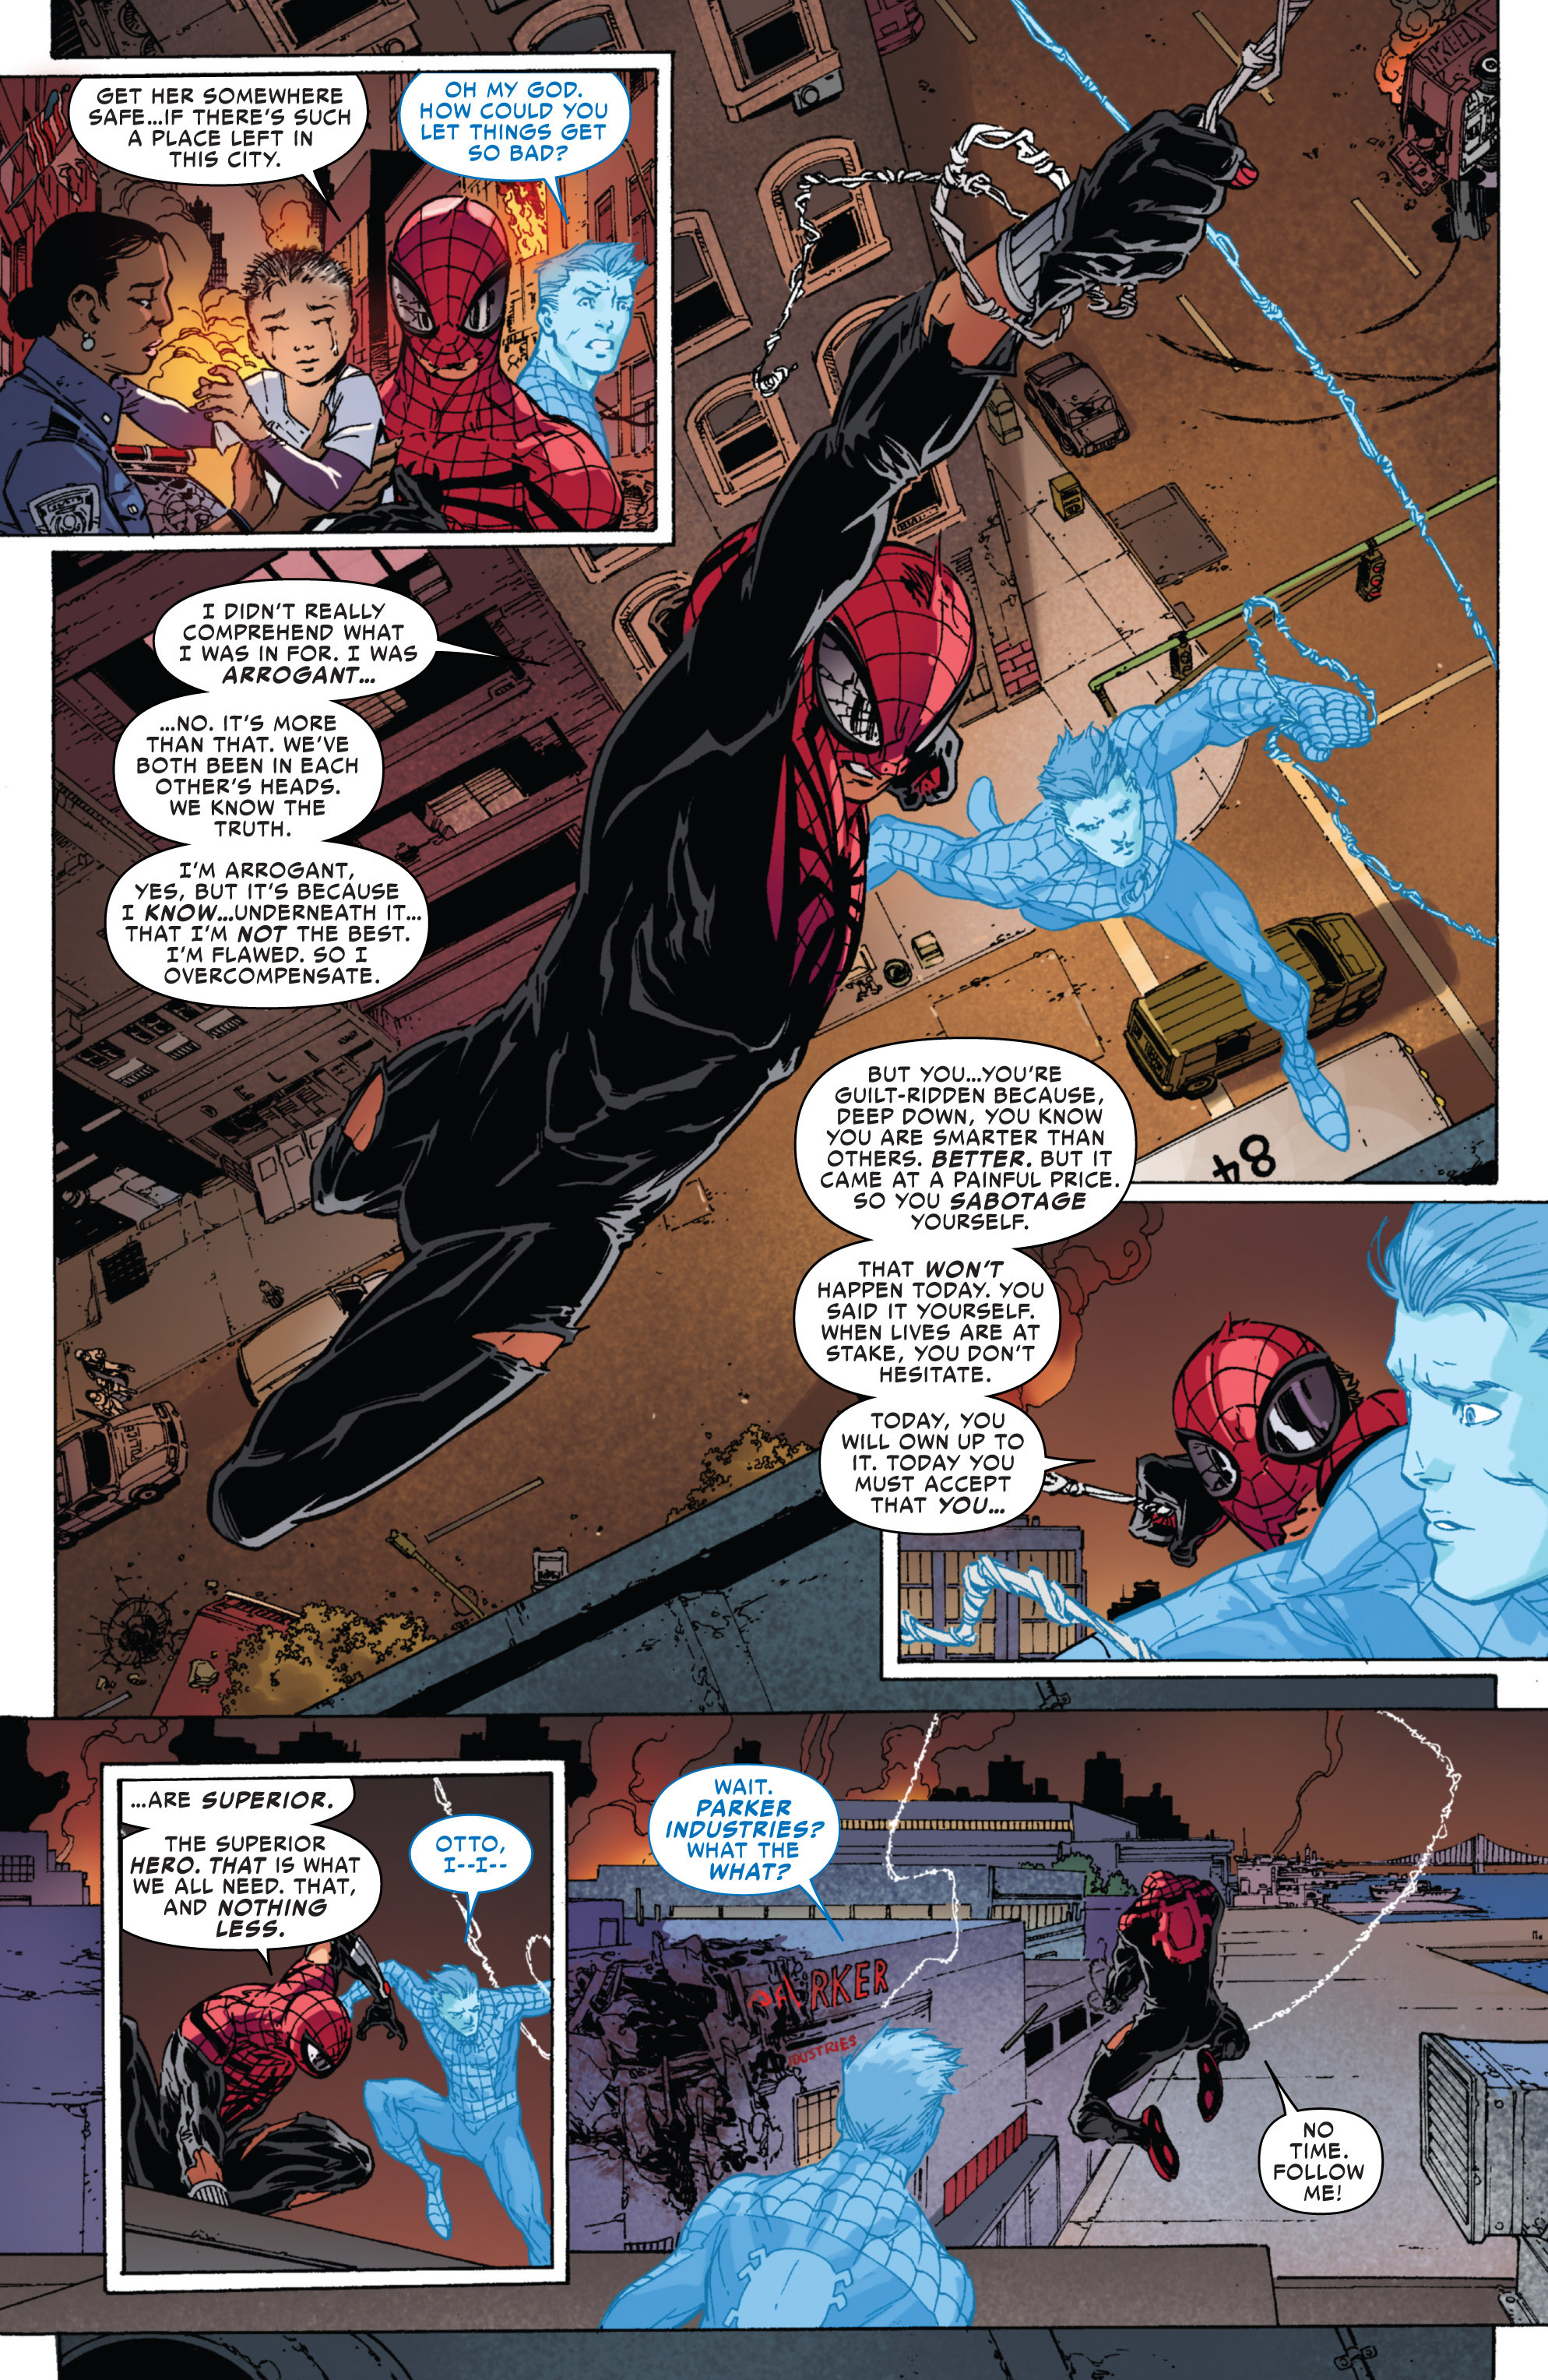 Superior Spider-Man #30-p.14